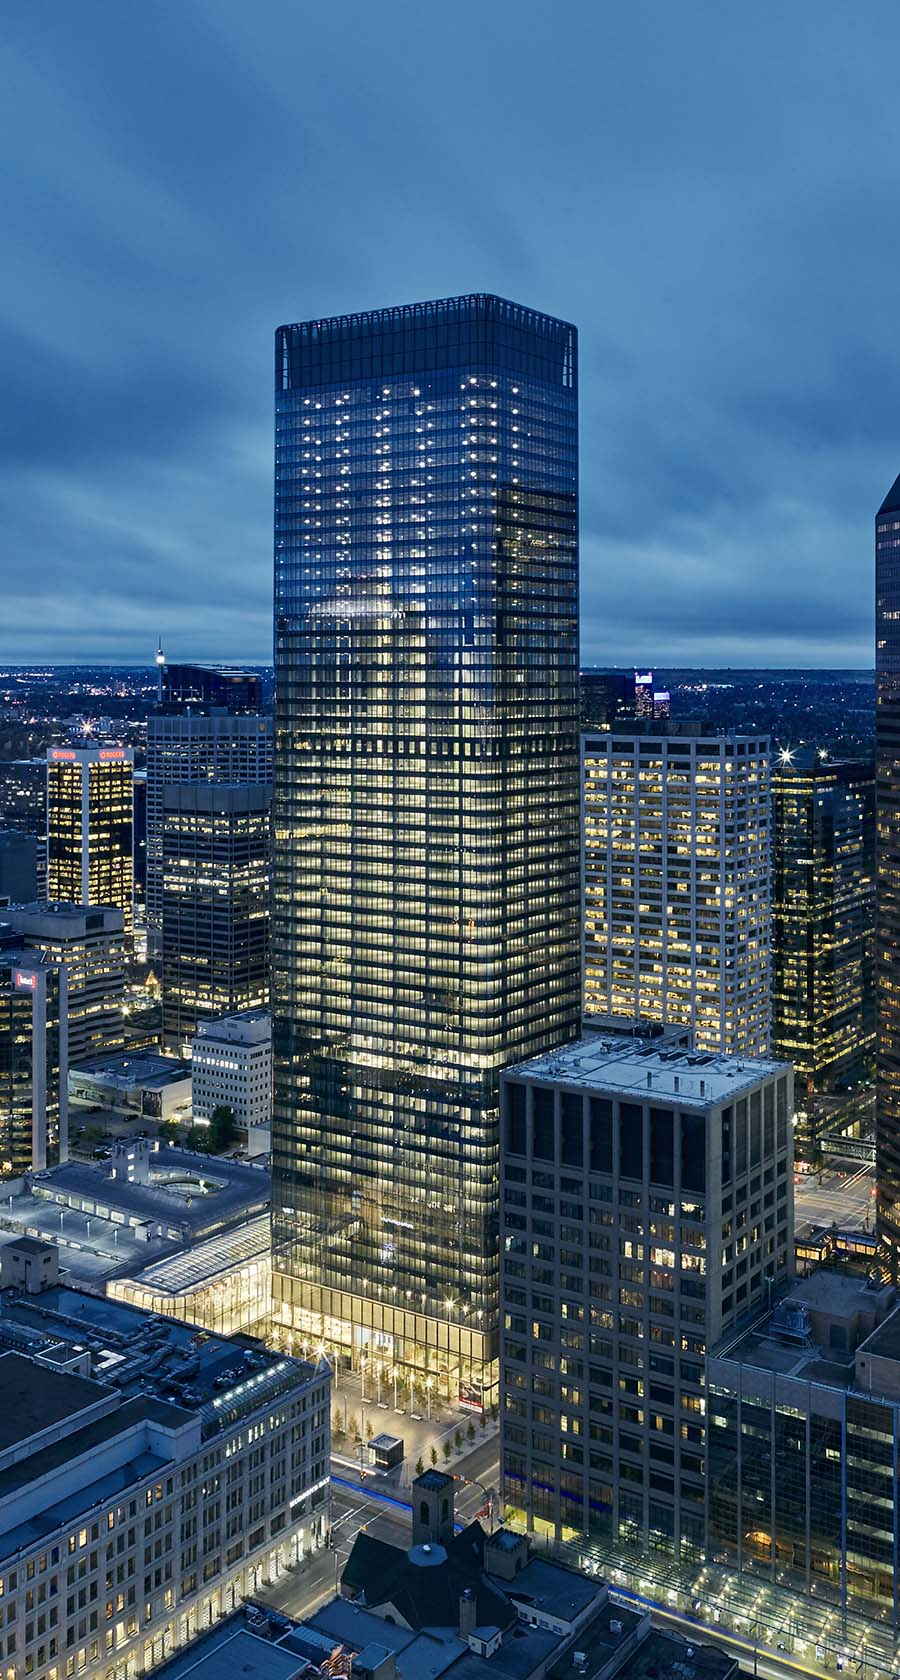 The exterior of Calgary's Brookfield Place all lit up at night. The project features lots of curved glass in what is currently the tallest tower in Calgary.